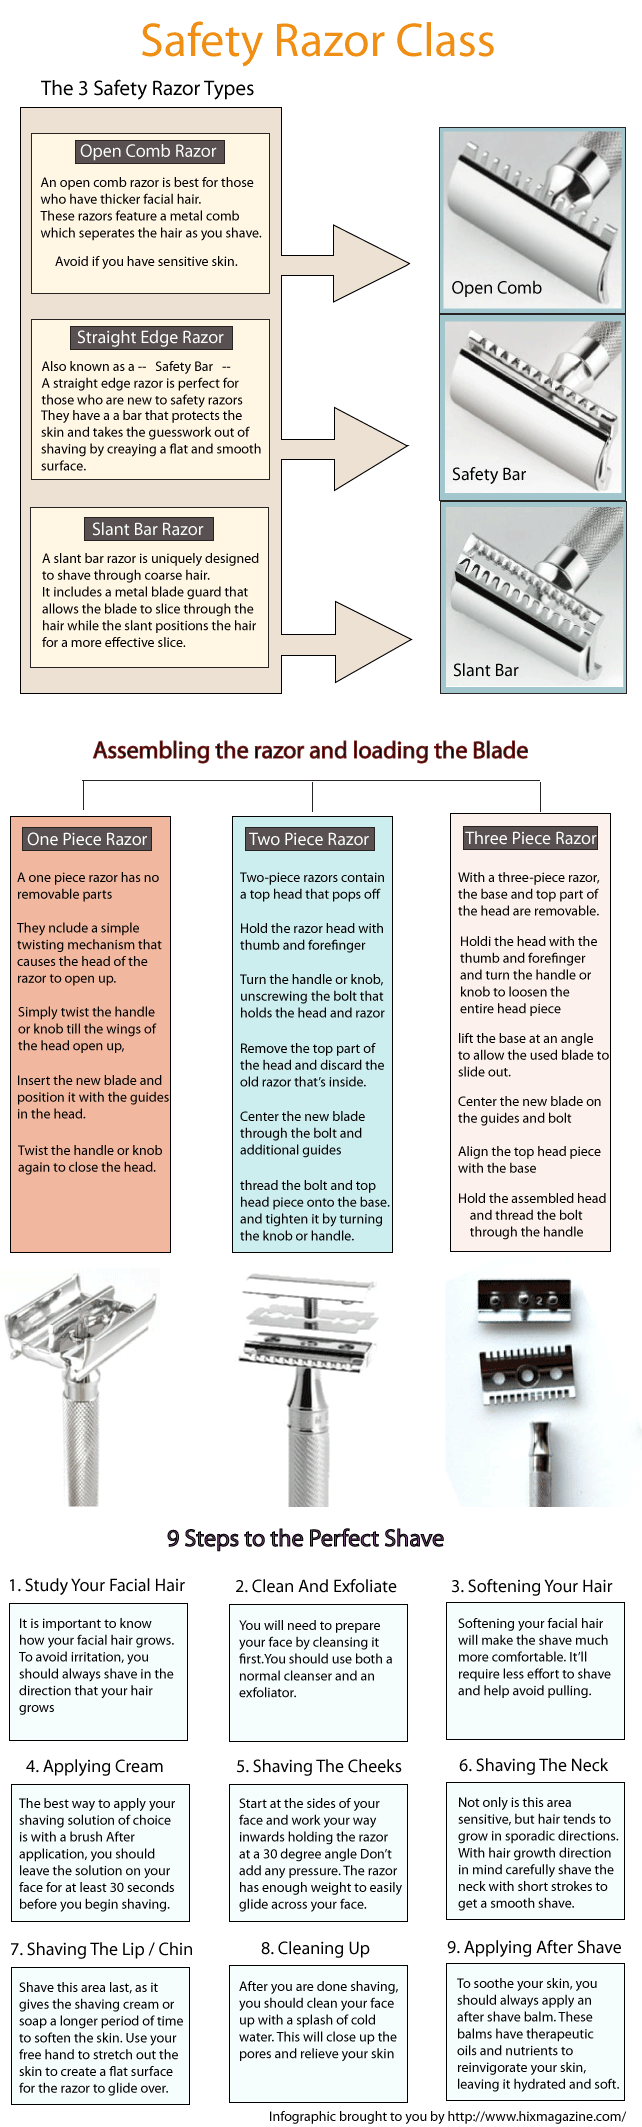 Safety Razor Class Infographic